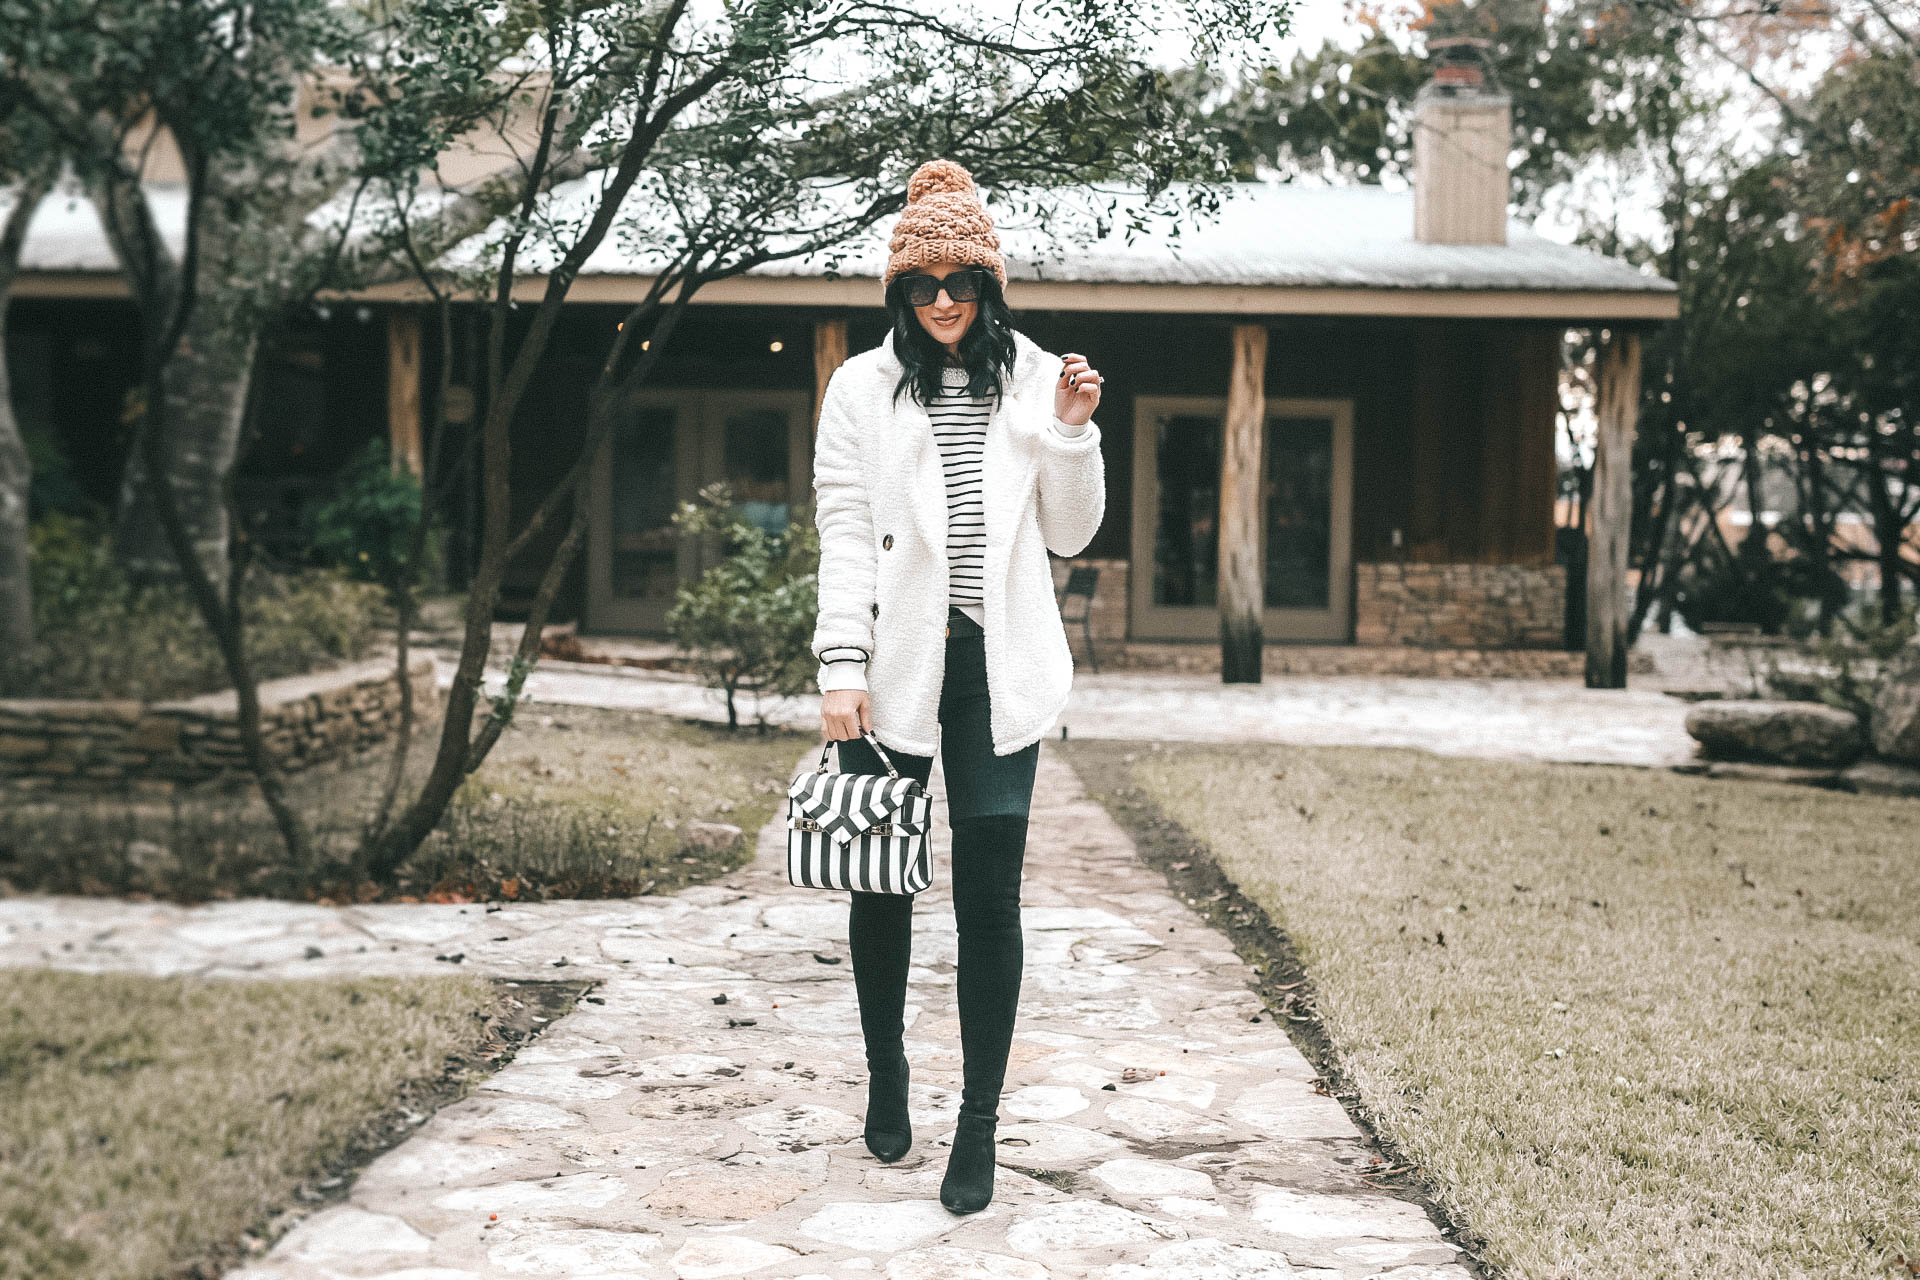 DTKAustin is sharing the most affordable beaded striped sweater from Chicwish. It is hand beaded with faux pearls and on sale for $45. Handbag is Henri Bendel, Over the Knee Boots Goodnight Macaroon, Teddy Bear coat is Goodnight Macaroon, Knit beanie is Abercrombie. || Dressed to Kill #fashion #style #womensoutfit #womensfashion #stripedsweater #knit #knitsweater #winterstyle #streetstyle #winterfashion #dtkaustin